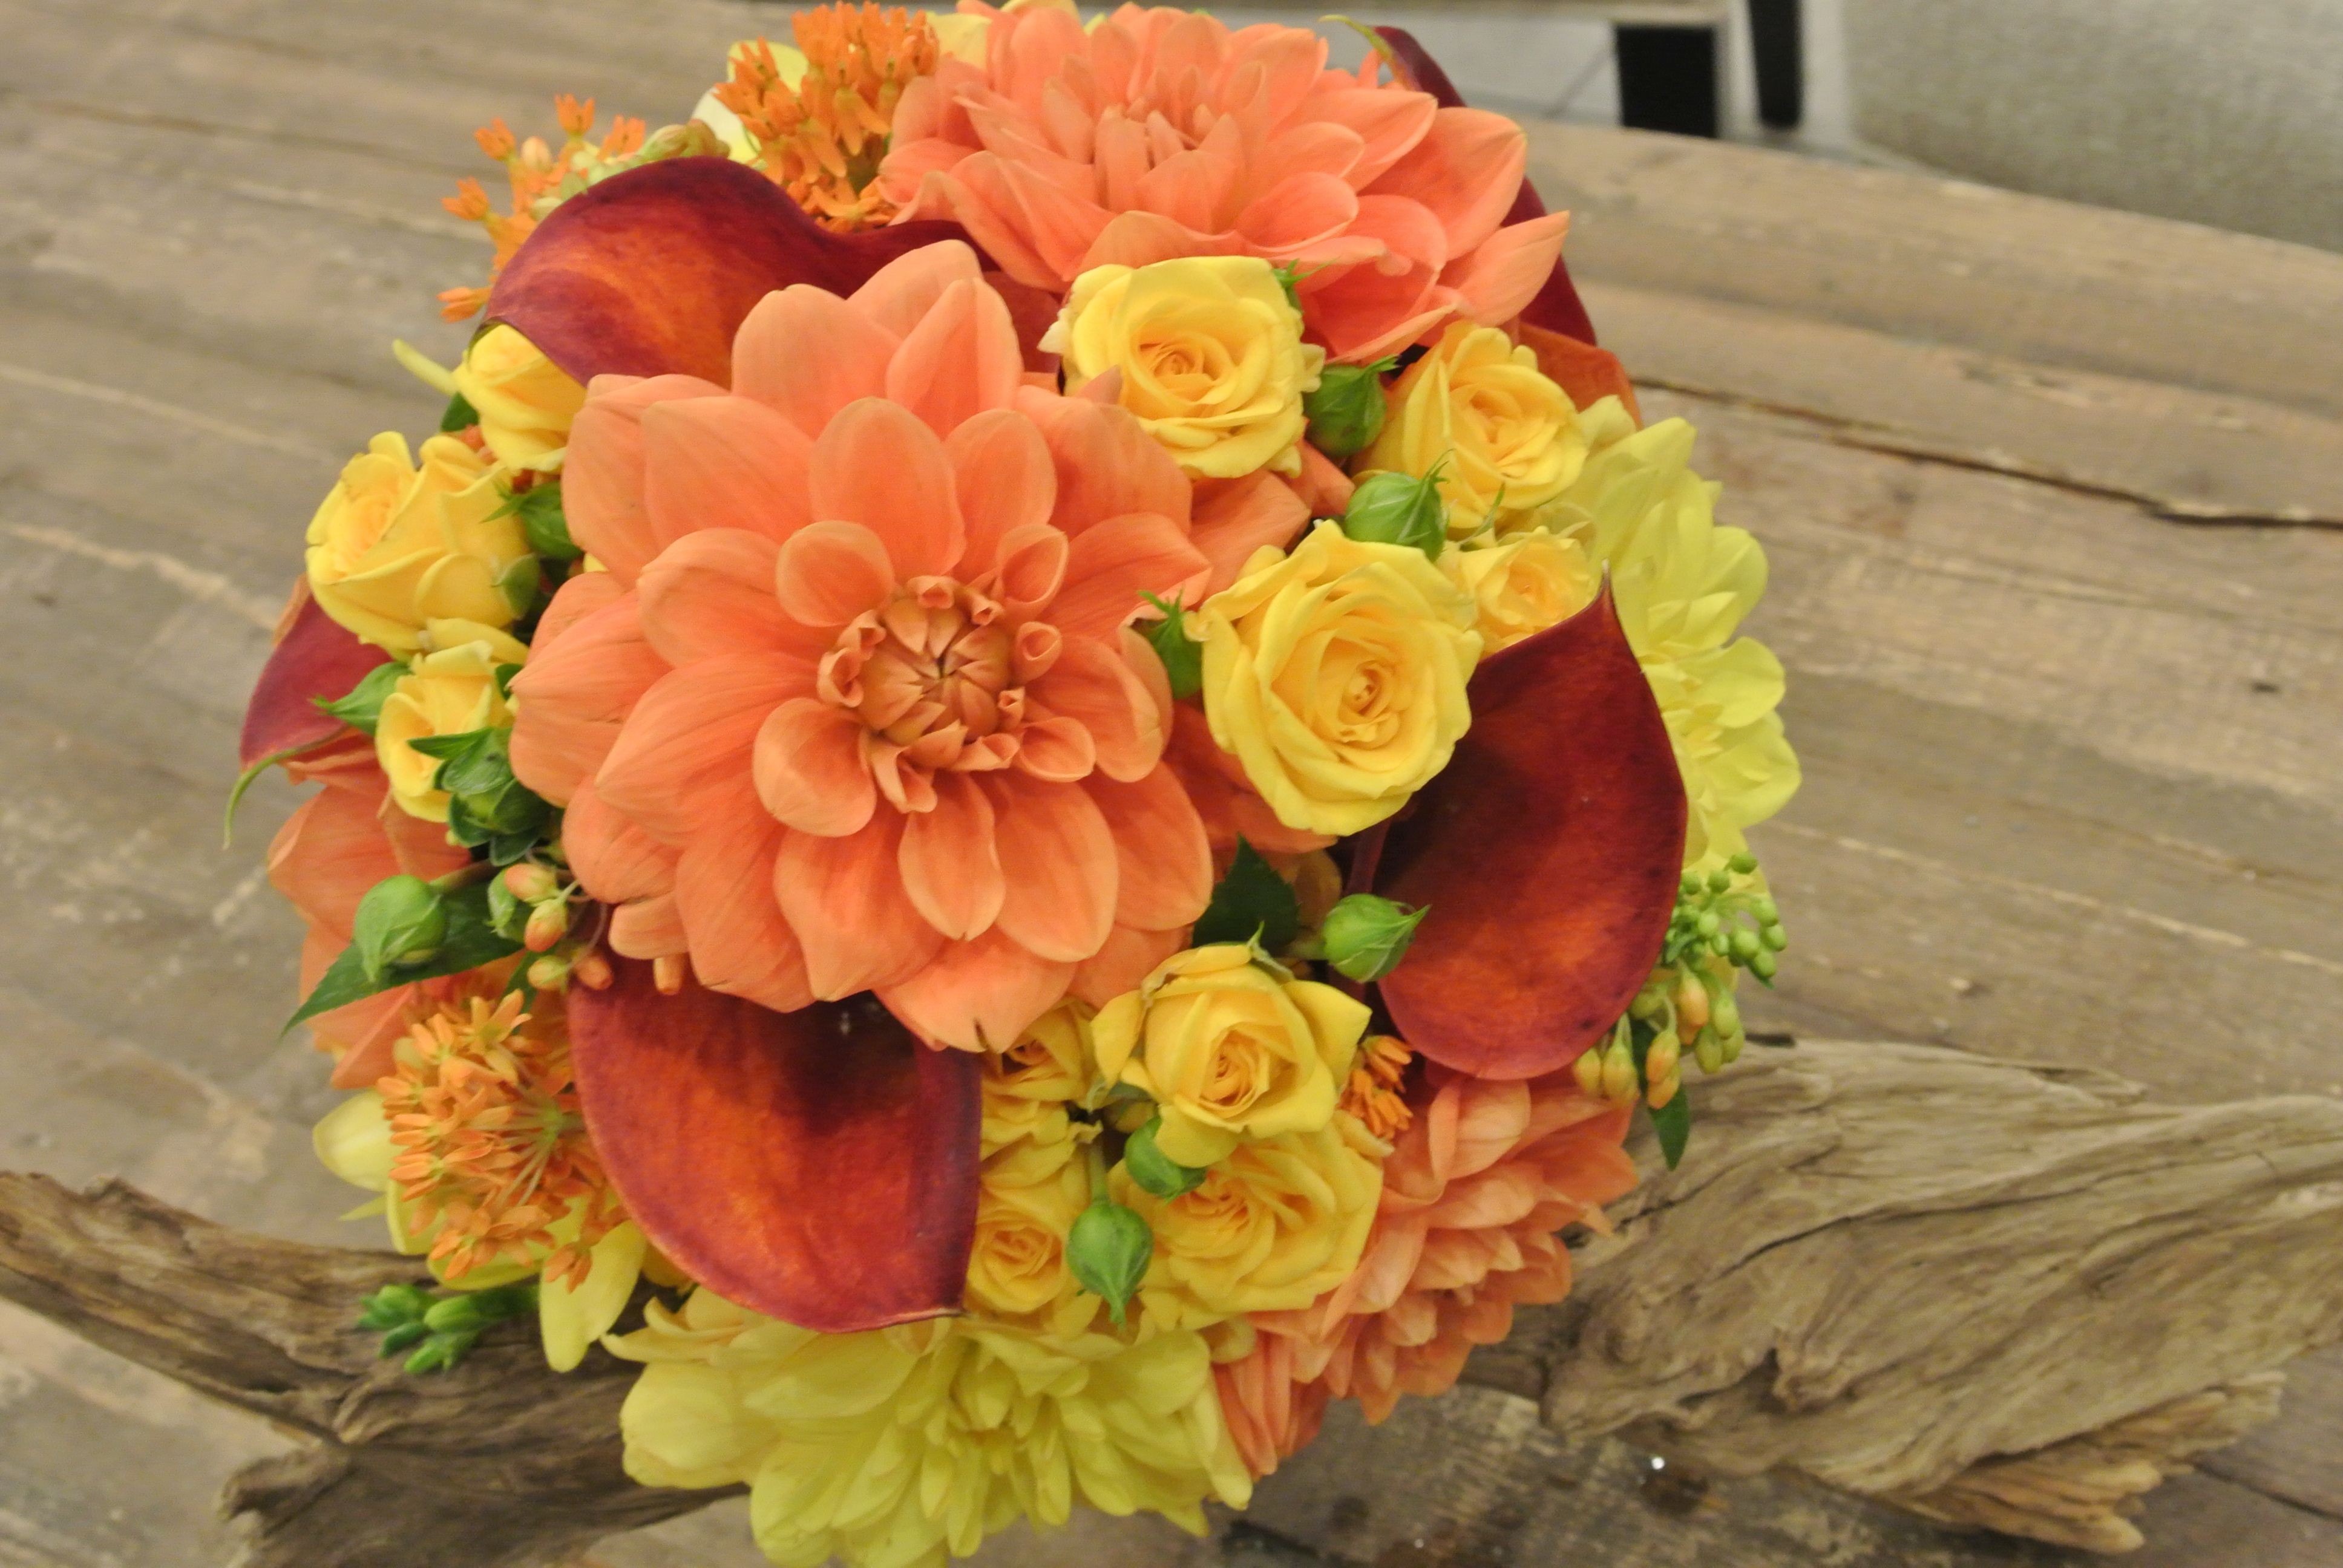 Bridal Bouquet With Dahlia Spray Roses Calla Lilies And Asclepias